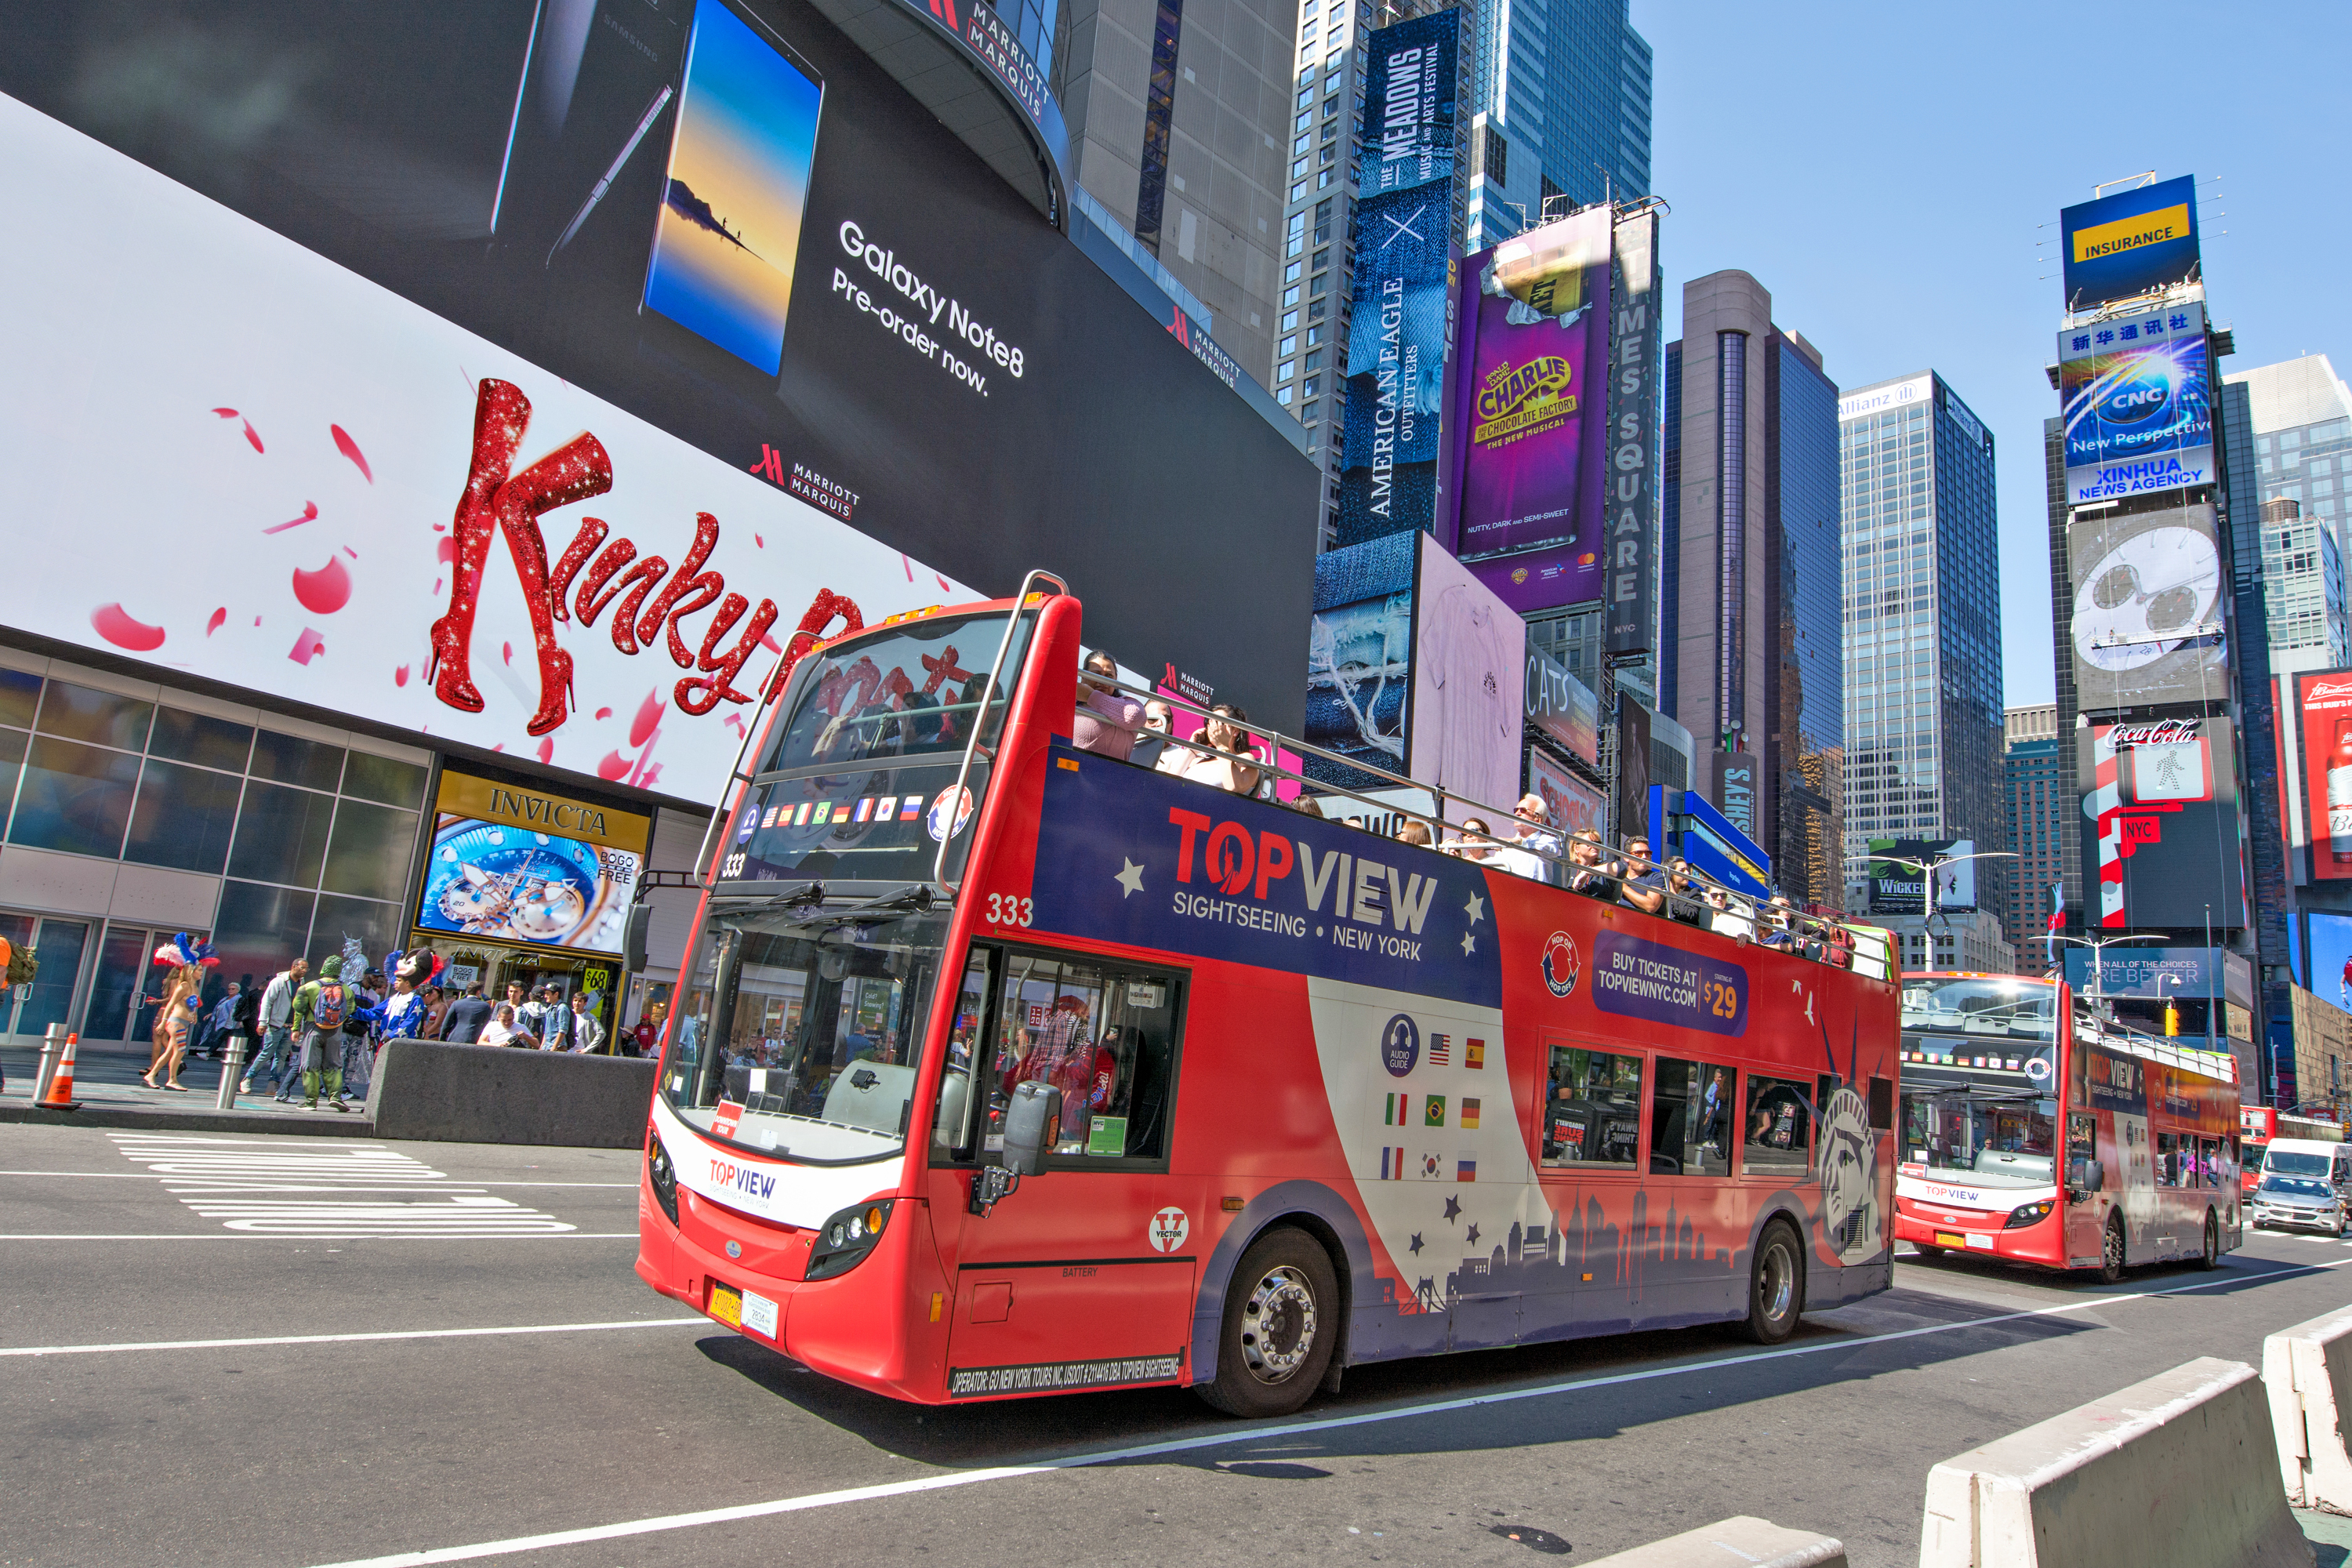 File:Double Buses Time Square jpg - Wikimedia Commons